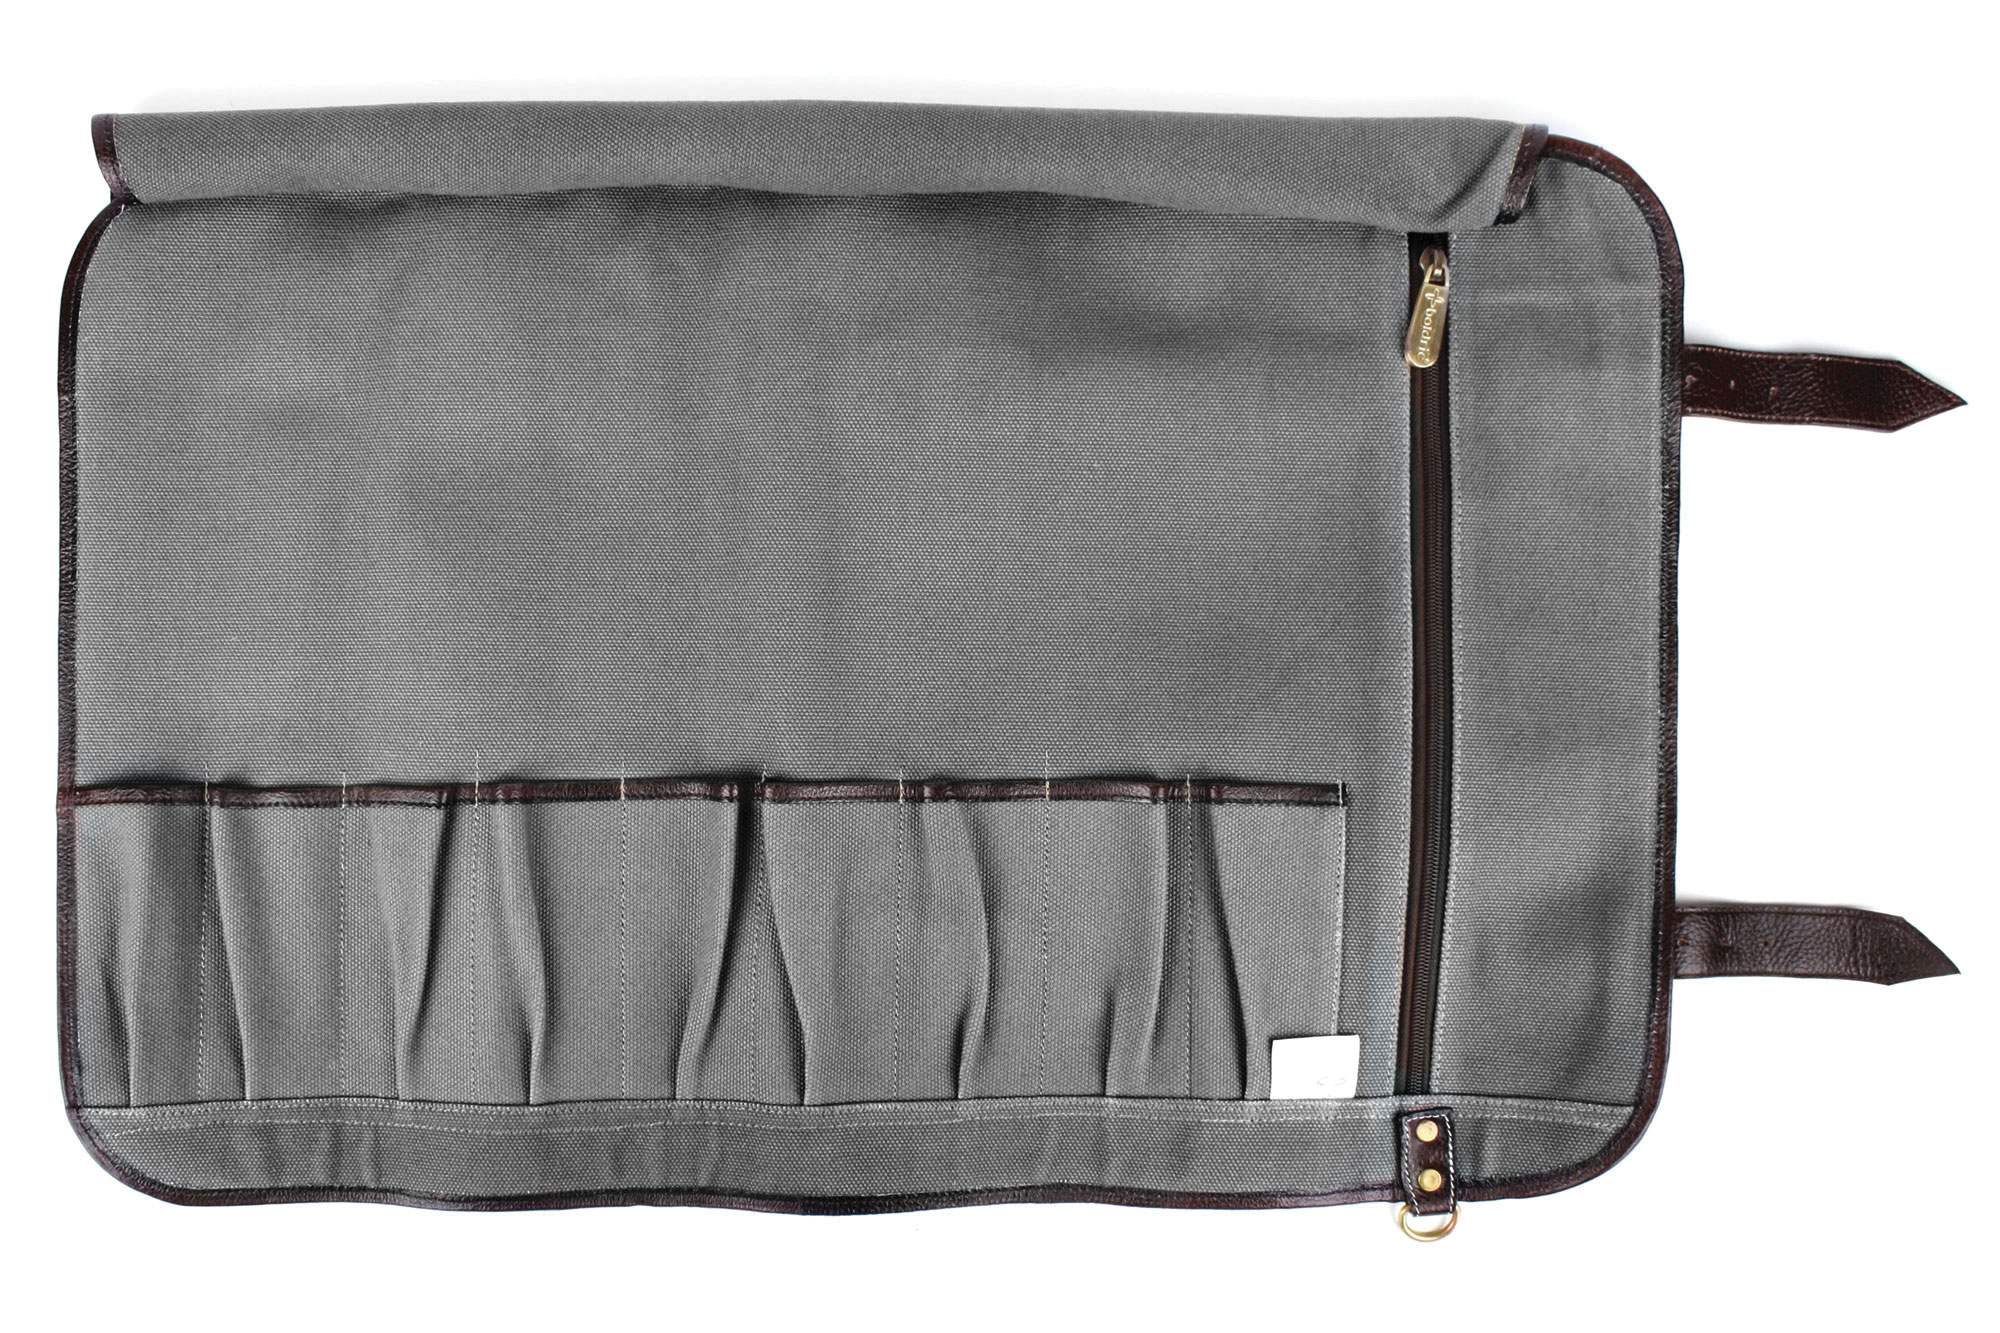 Boldric Canvas Knife Roll 9 Pocket Gray Cutlery And More